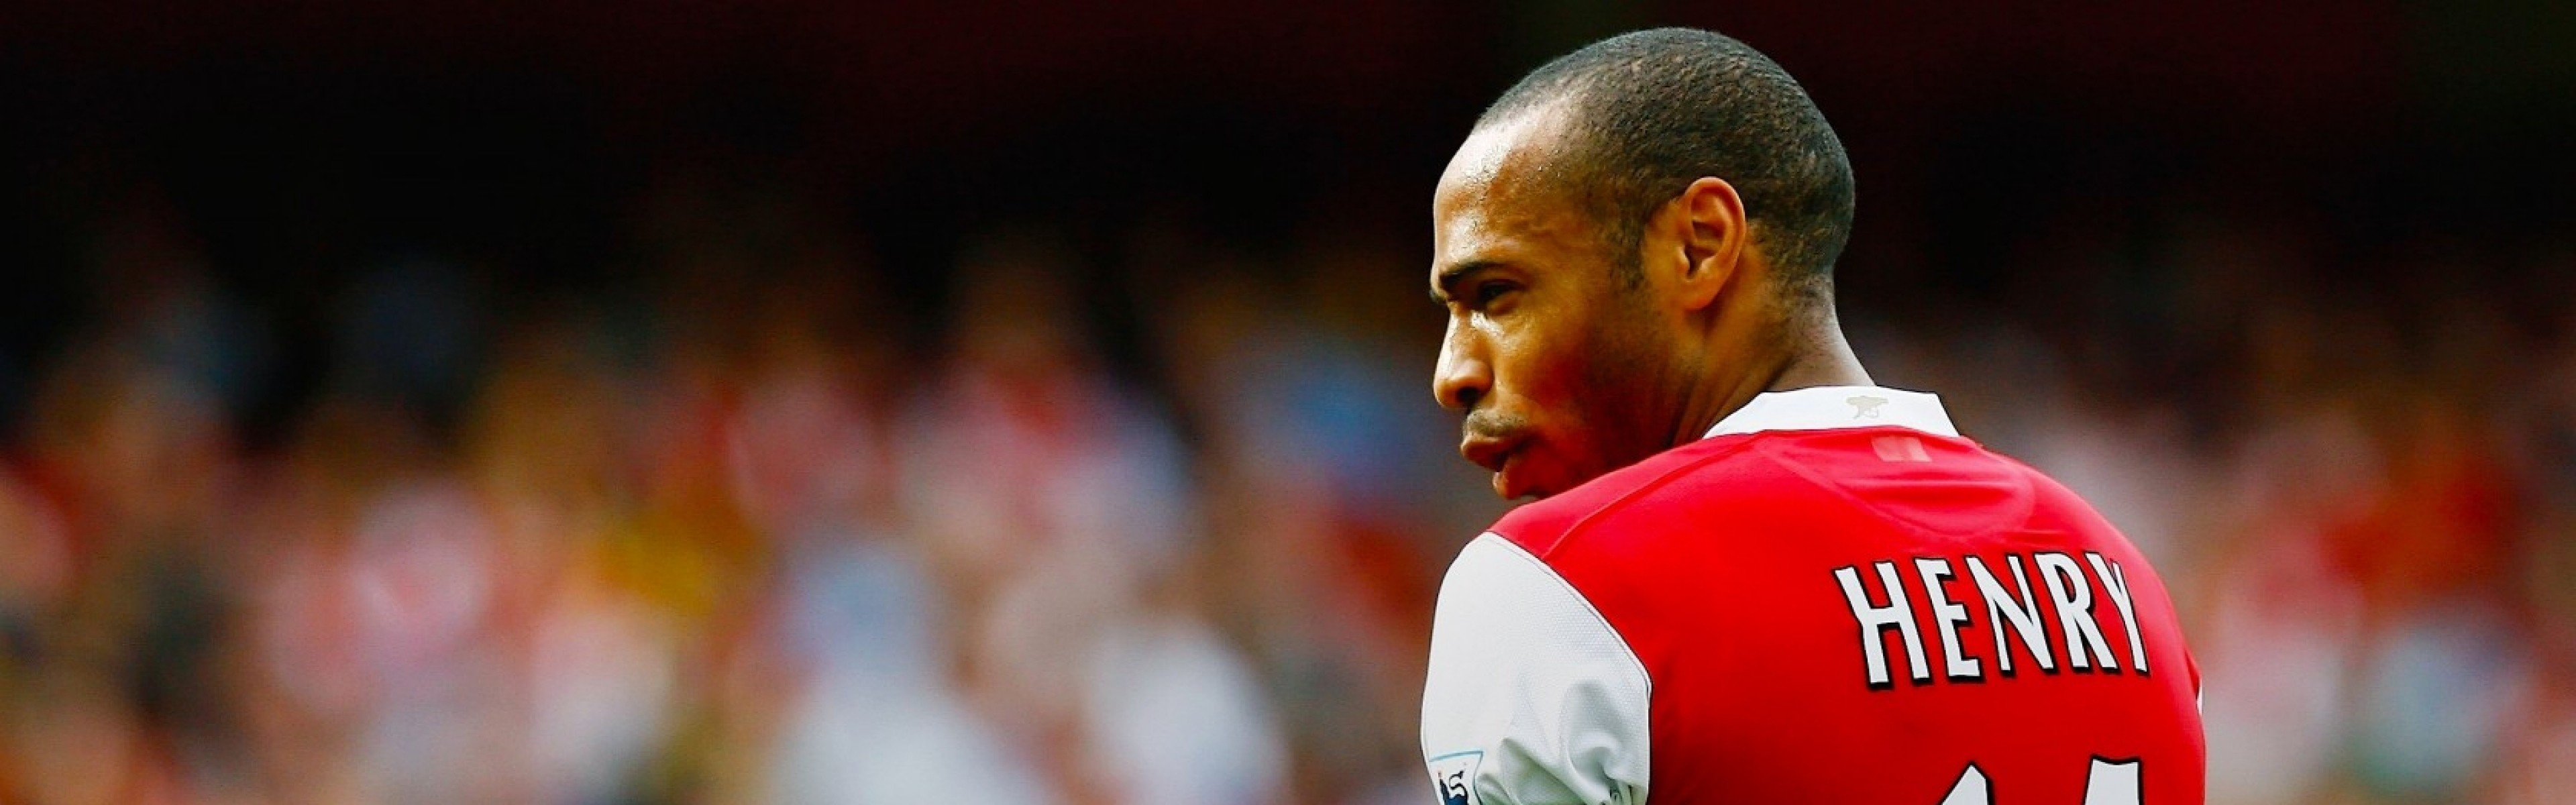 Thierry Henry Wallpaper HD